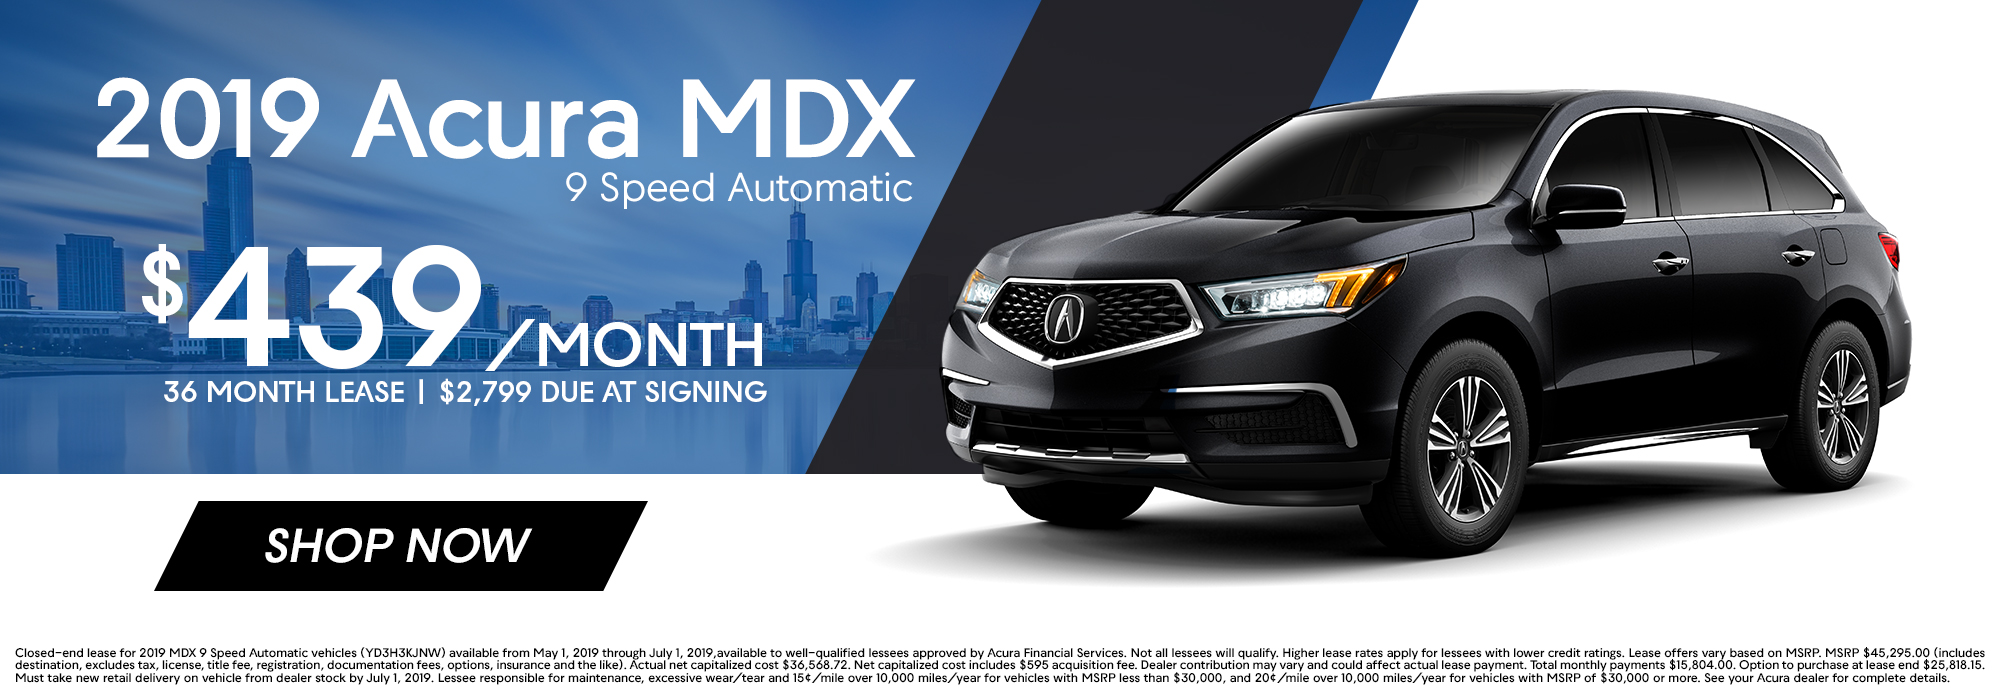 Mullers Woodfield Acura >> Muller S Woodfield Acura Lease Specials Muller S Woodfield Acura